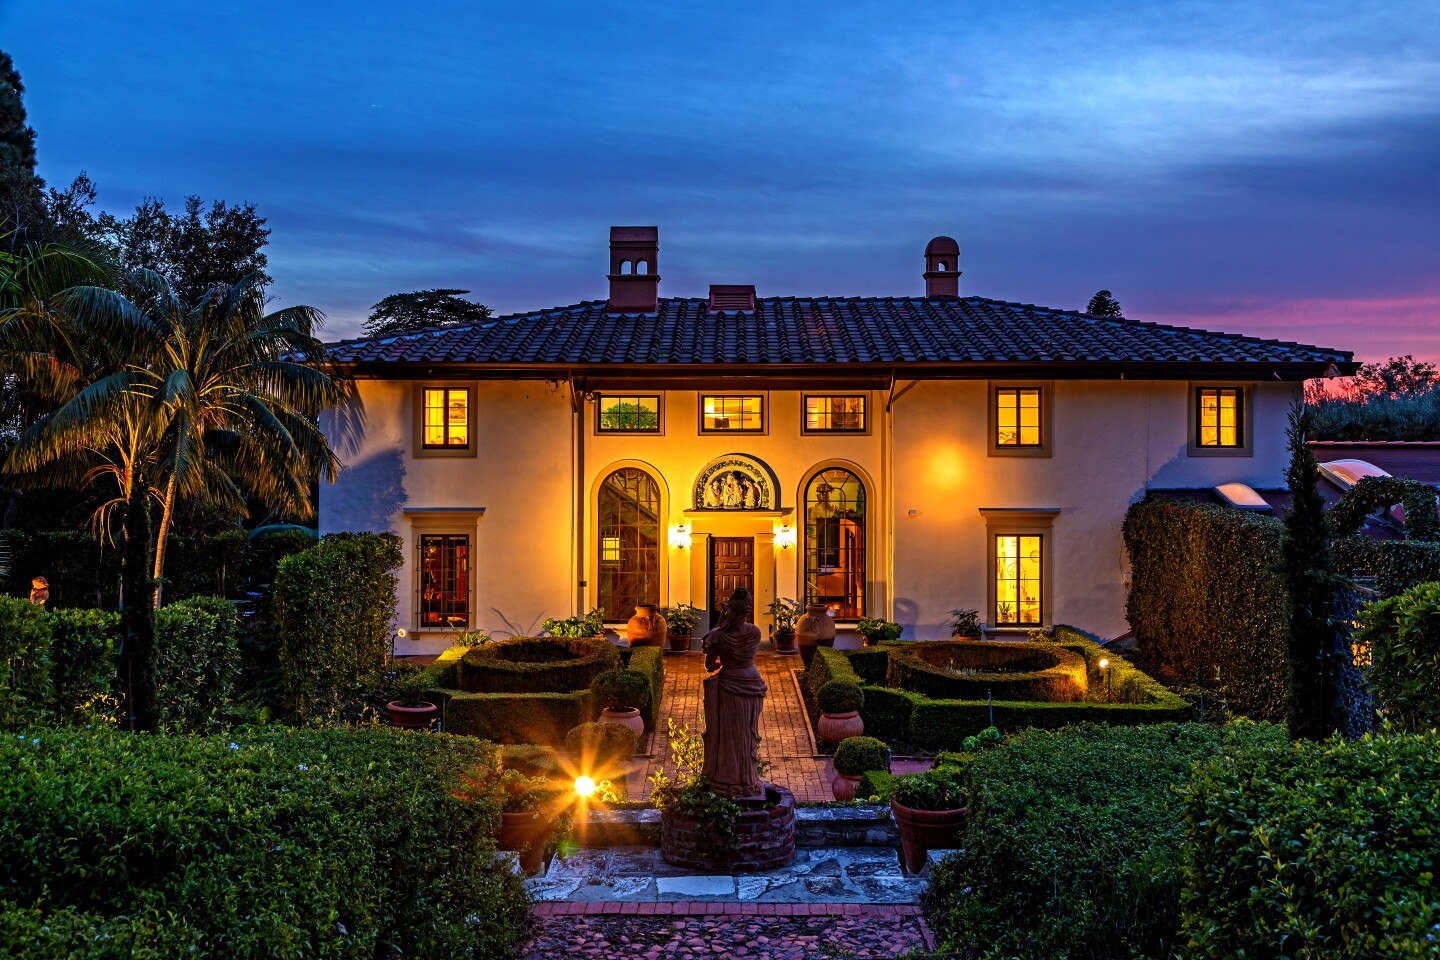 The Villa Narcissa estate in Rancho Palos Verdes encompasses more than 11 acres.